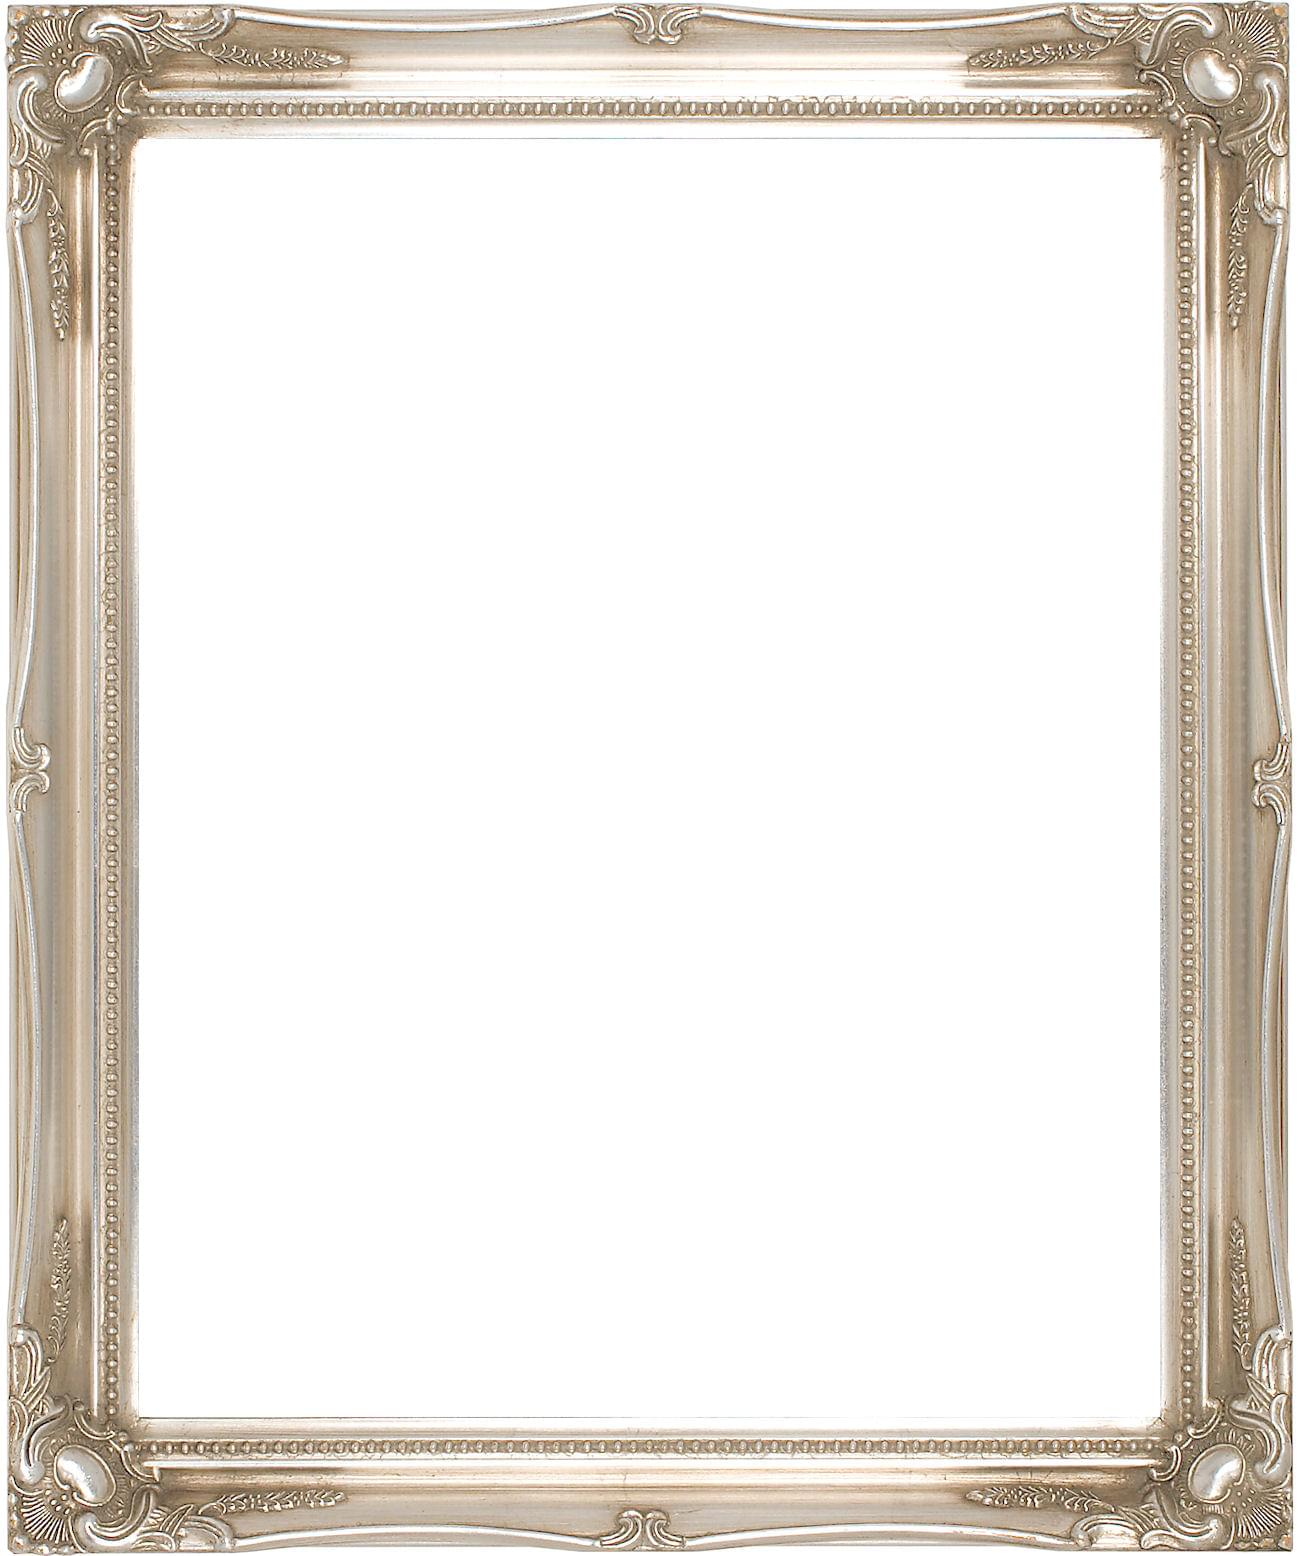 Custom Photo Painting Picture Frames Online Frames Express